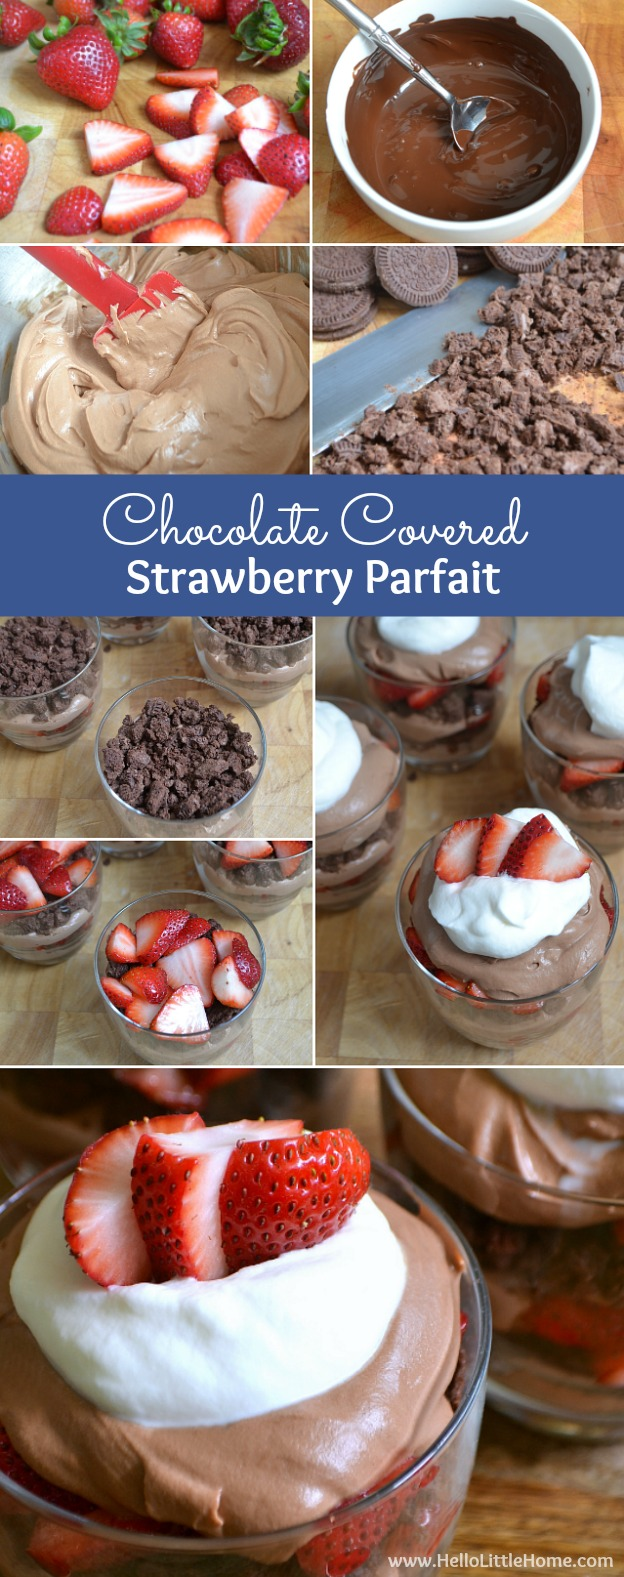 Step by step instructions for making a Chocolate Covered Strawberry Parfait ... a rich, creamy dessert recipe that's sure to impress! | Hello Little Home